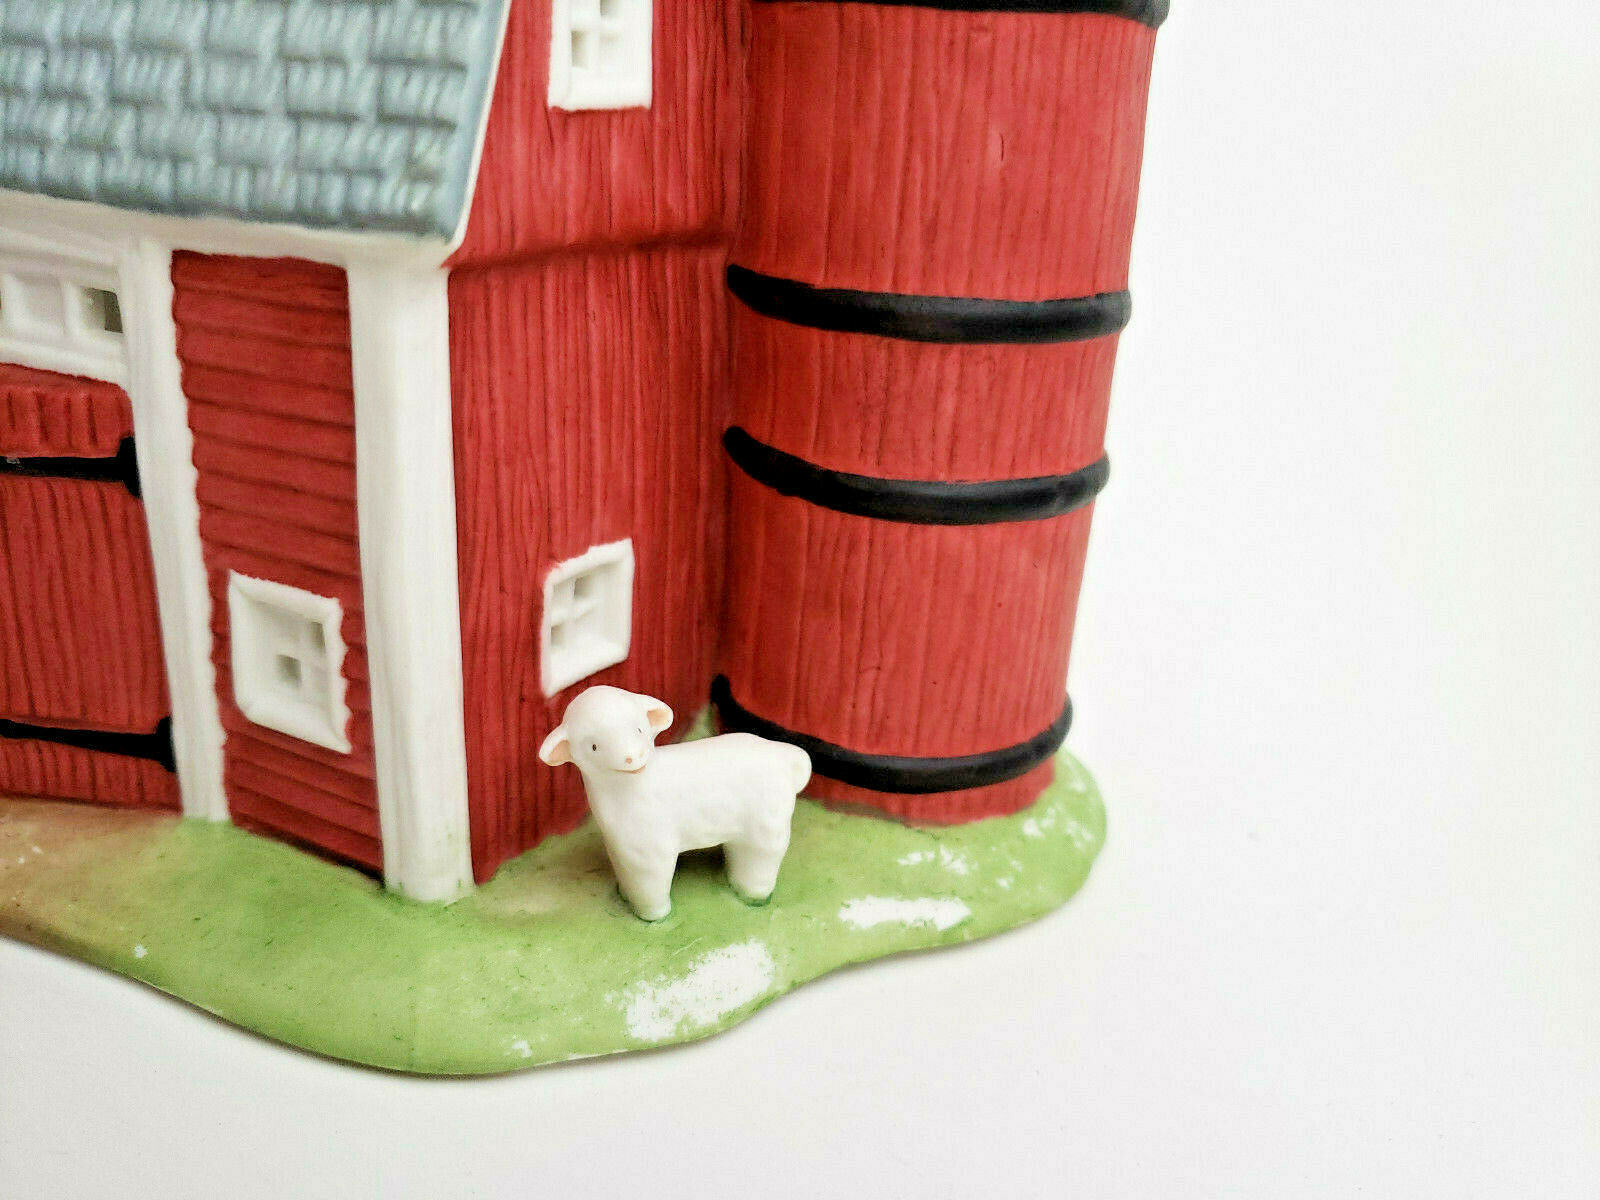 Meadow Brook Farm Tealight Candle Holder Holiday Village PartyLite P0493 Vtg